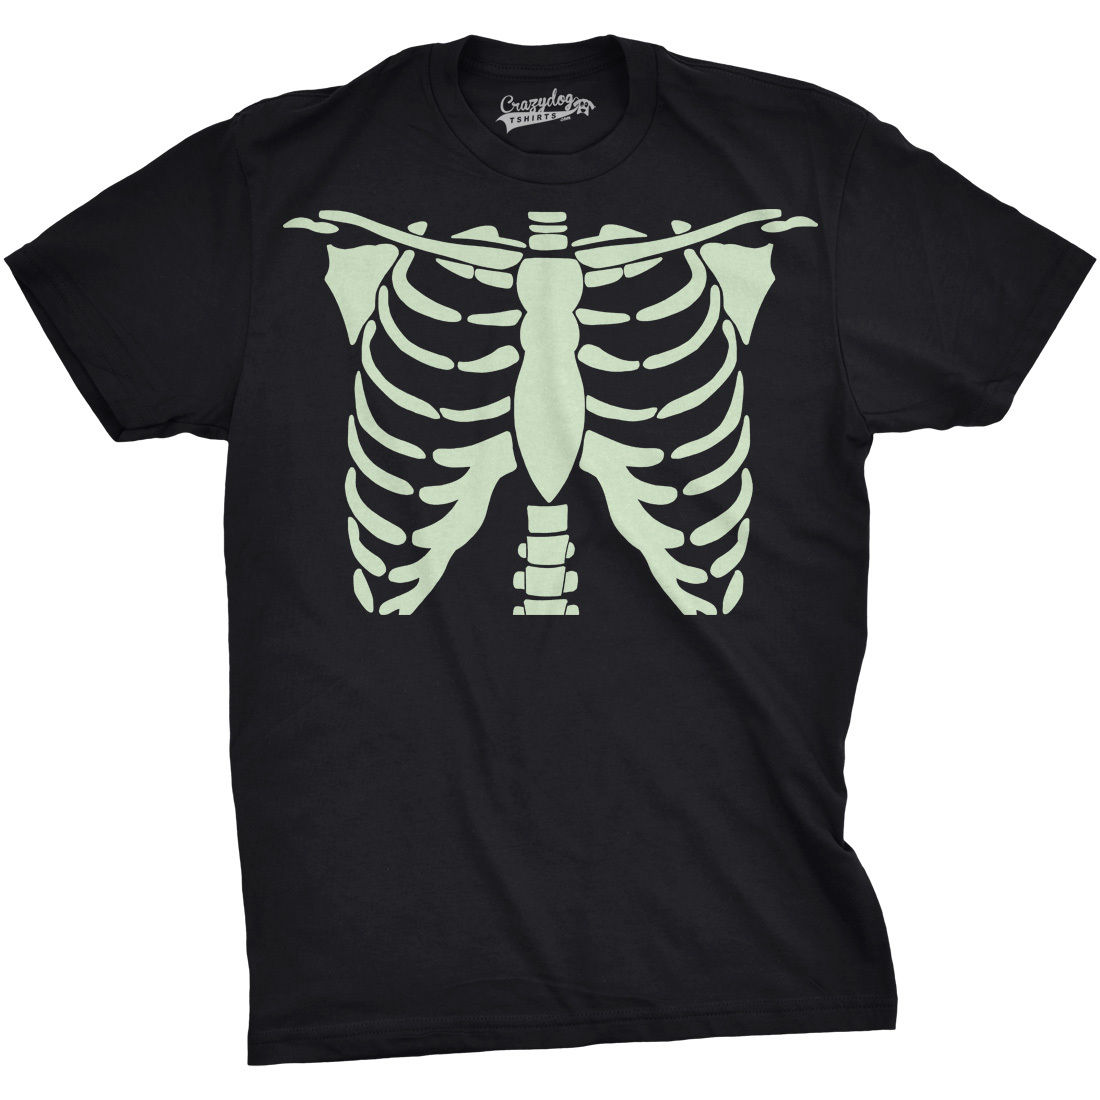 Mens Glowing Skeleton <font><b>Rib</b></font> Cage Cool Halloween T Shirt New Men'S Fashion <font><b>Short-Sleeve</b></font> <font><b>T-Shirt</b></font> Mens Print Cotton High Quality